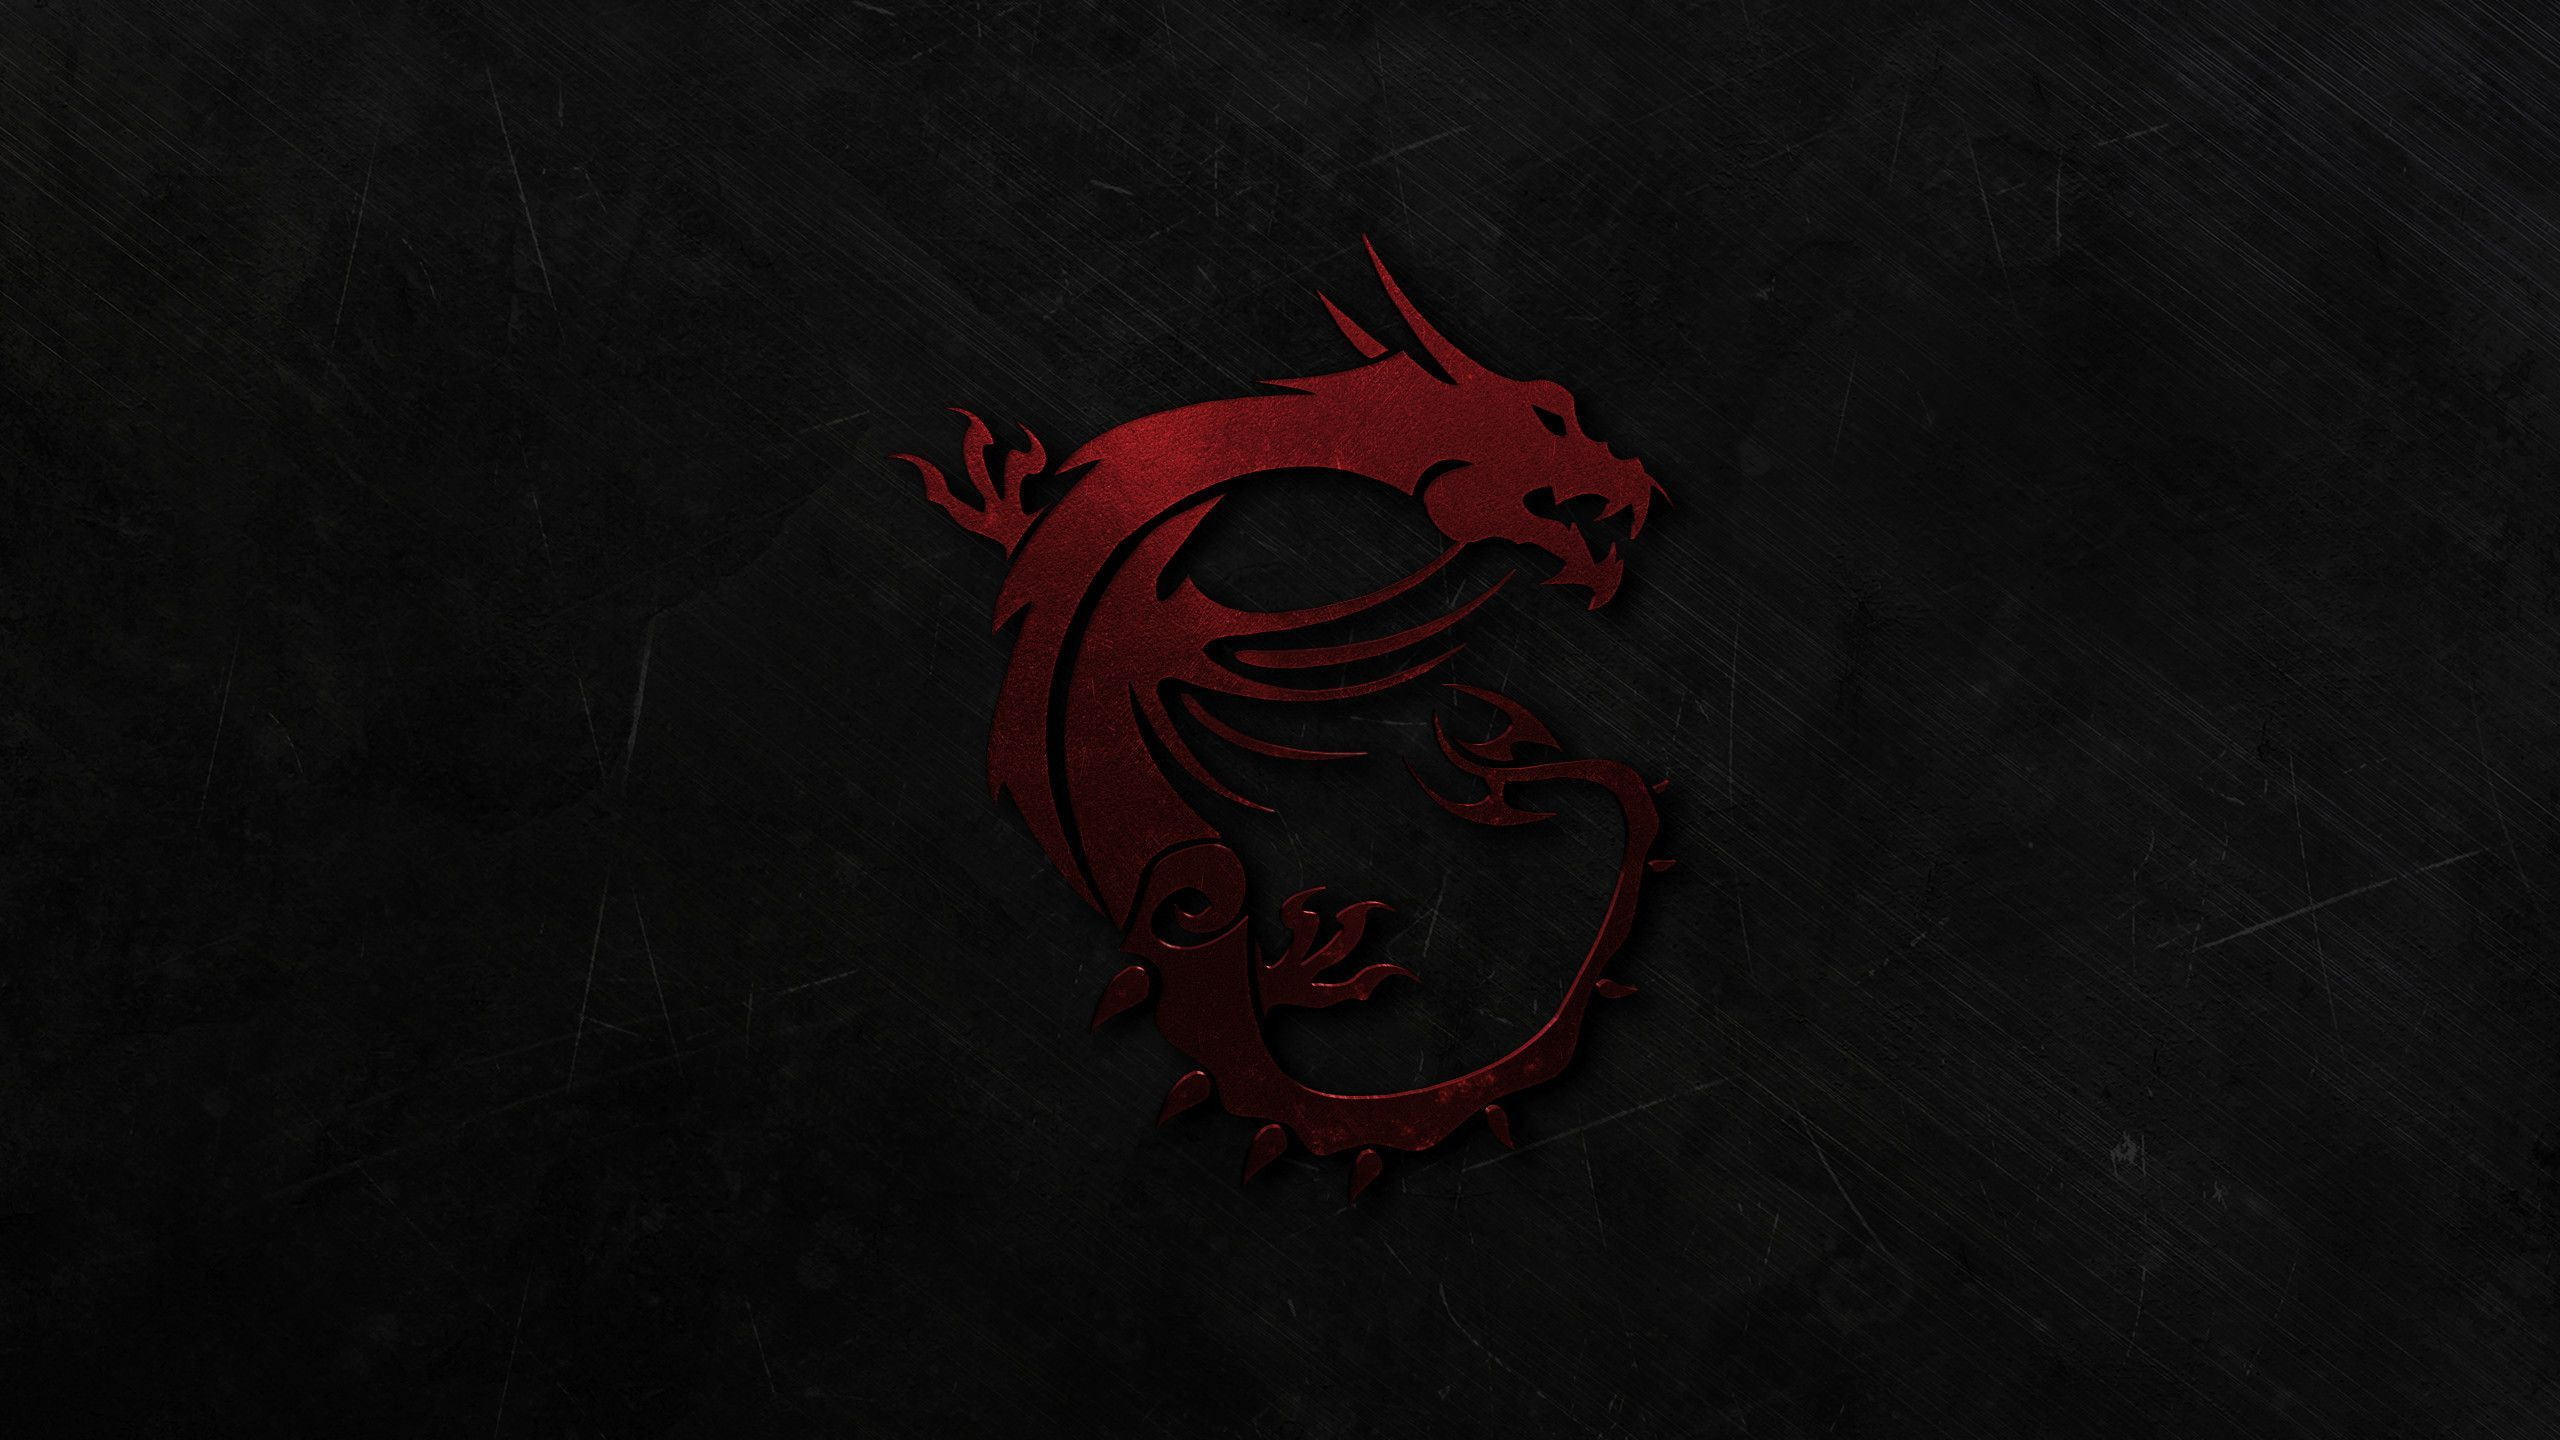 Pin By Marek Sebesta On Msi In 2020 Gaming Wallpapers Technology Design Graphic Red Dragon